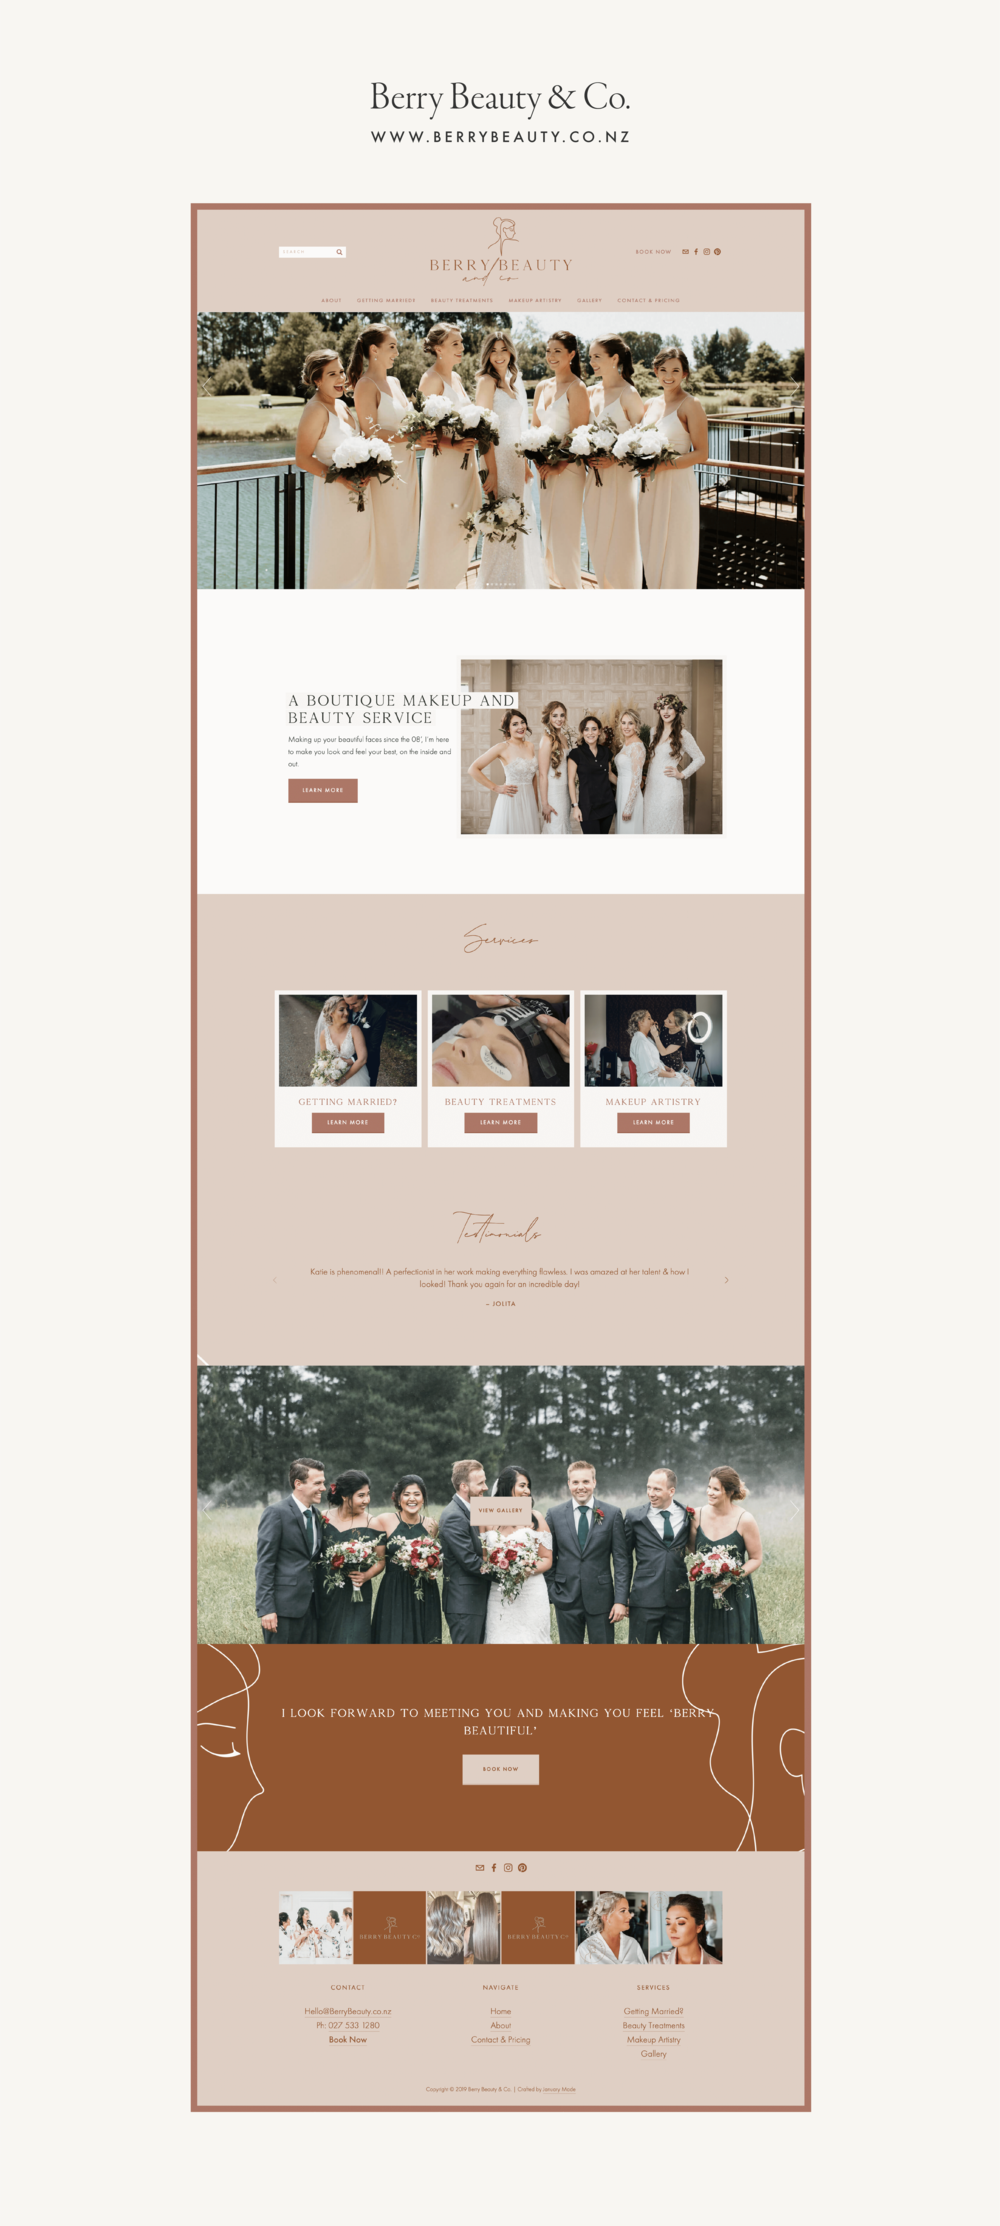 Berry Beauty & Co website - by January Made Design